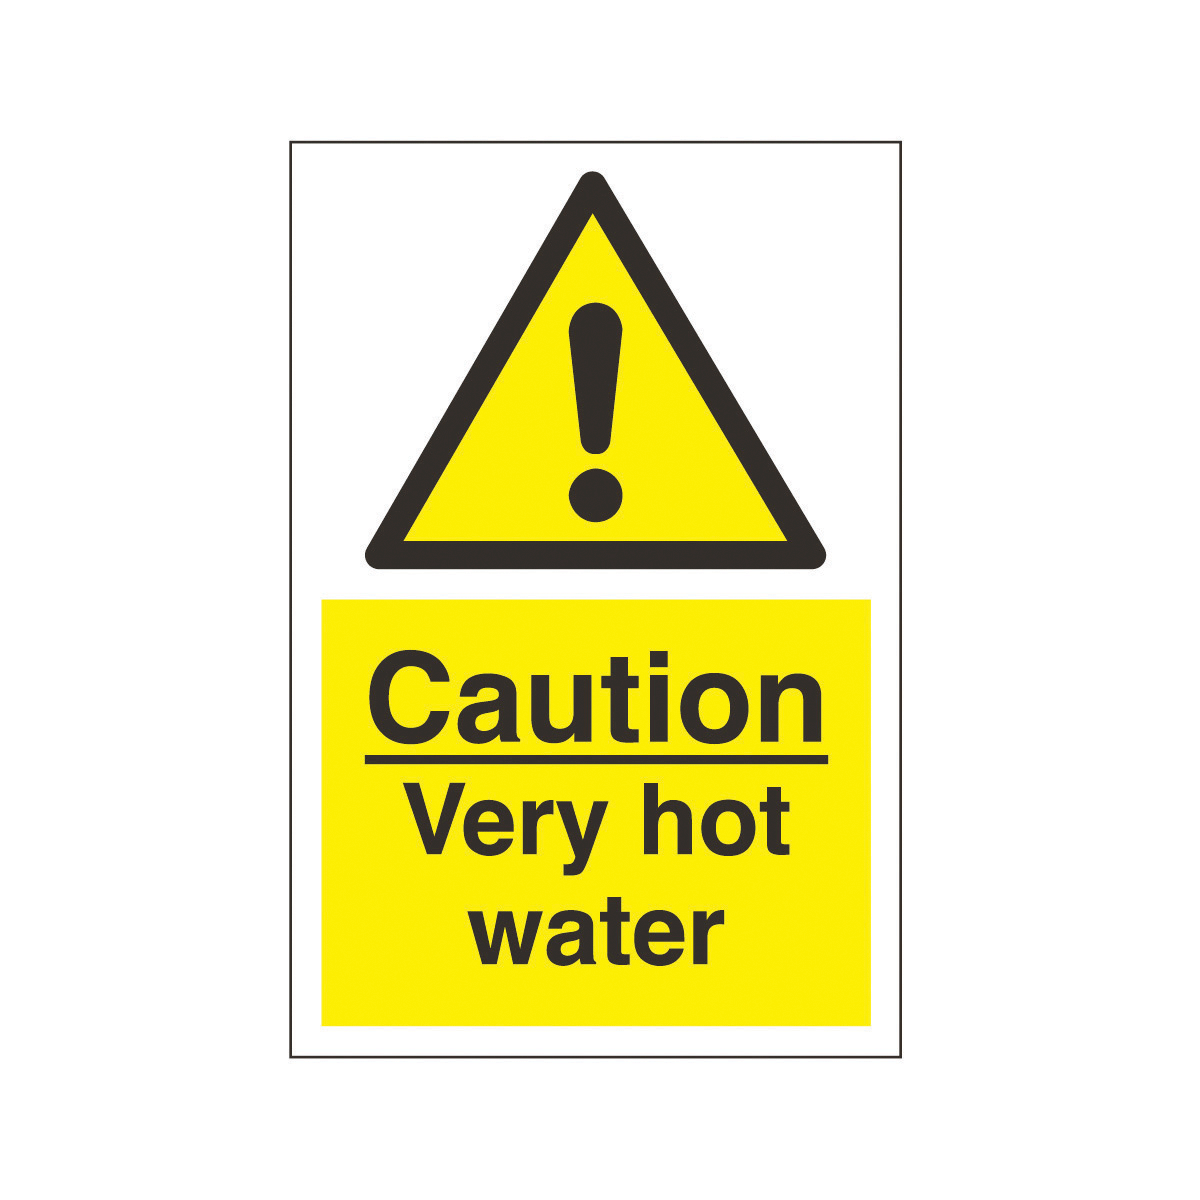 Free Picture Of Hot Water Download Free Clip Art Free Clip Art On Clipart Library